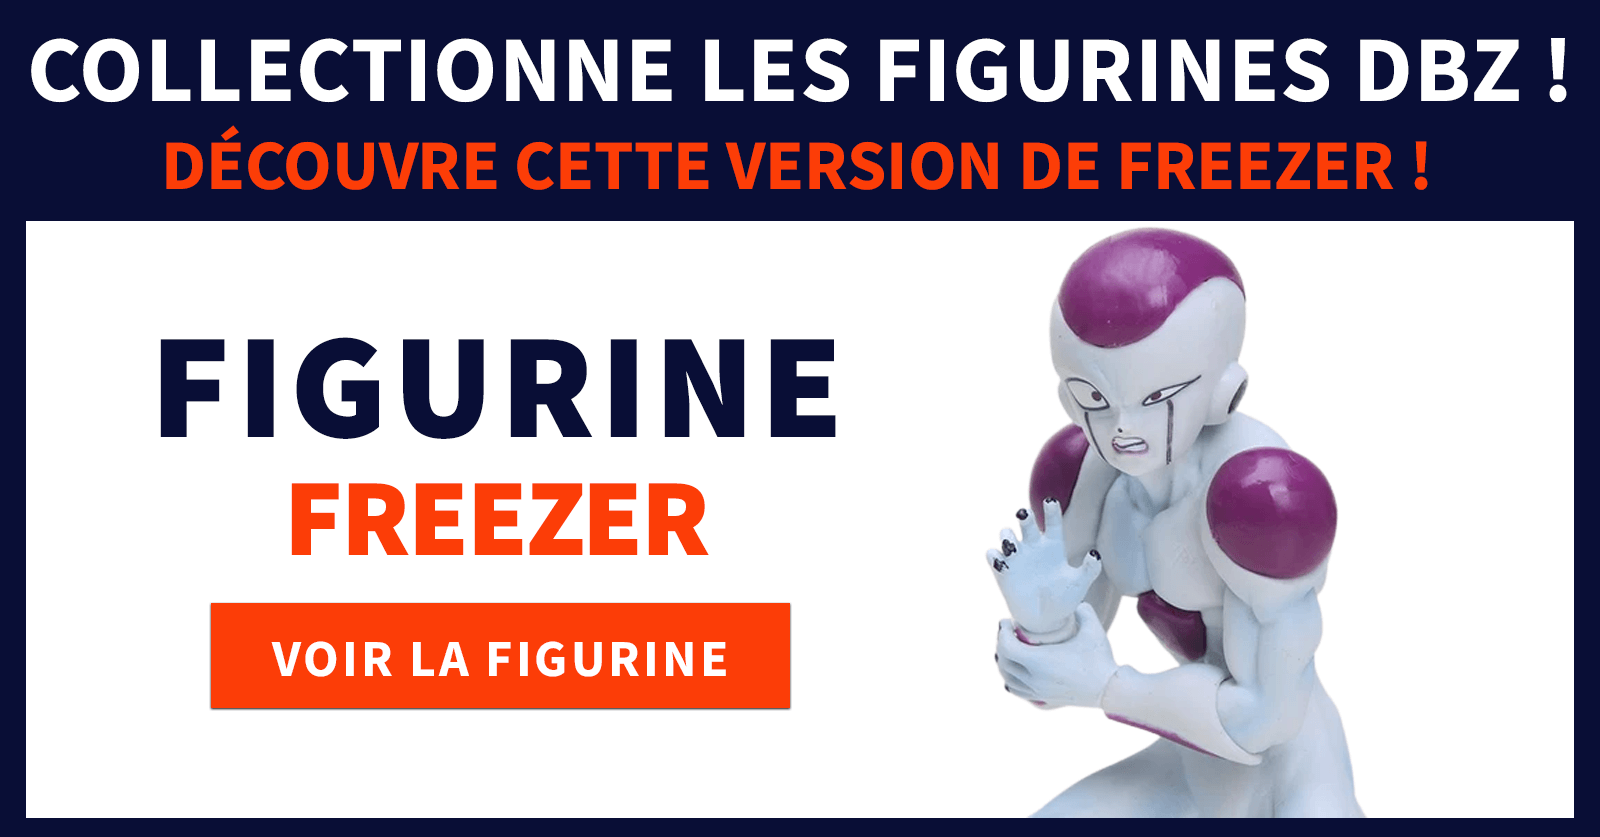 figurine freezer dbz